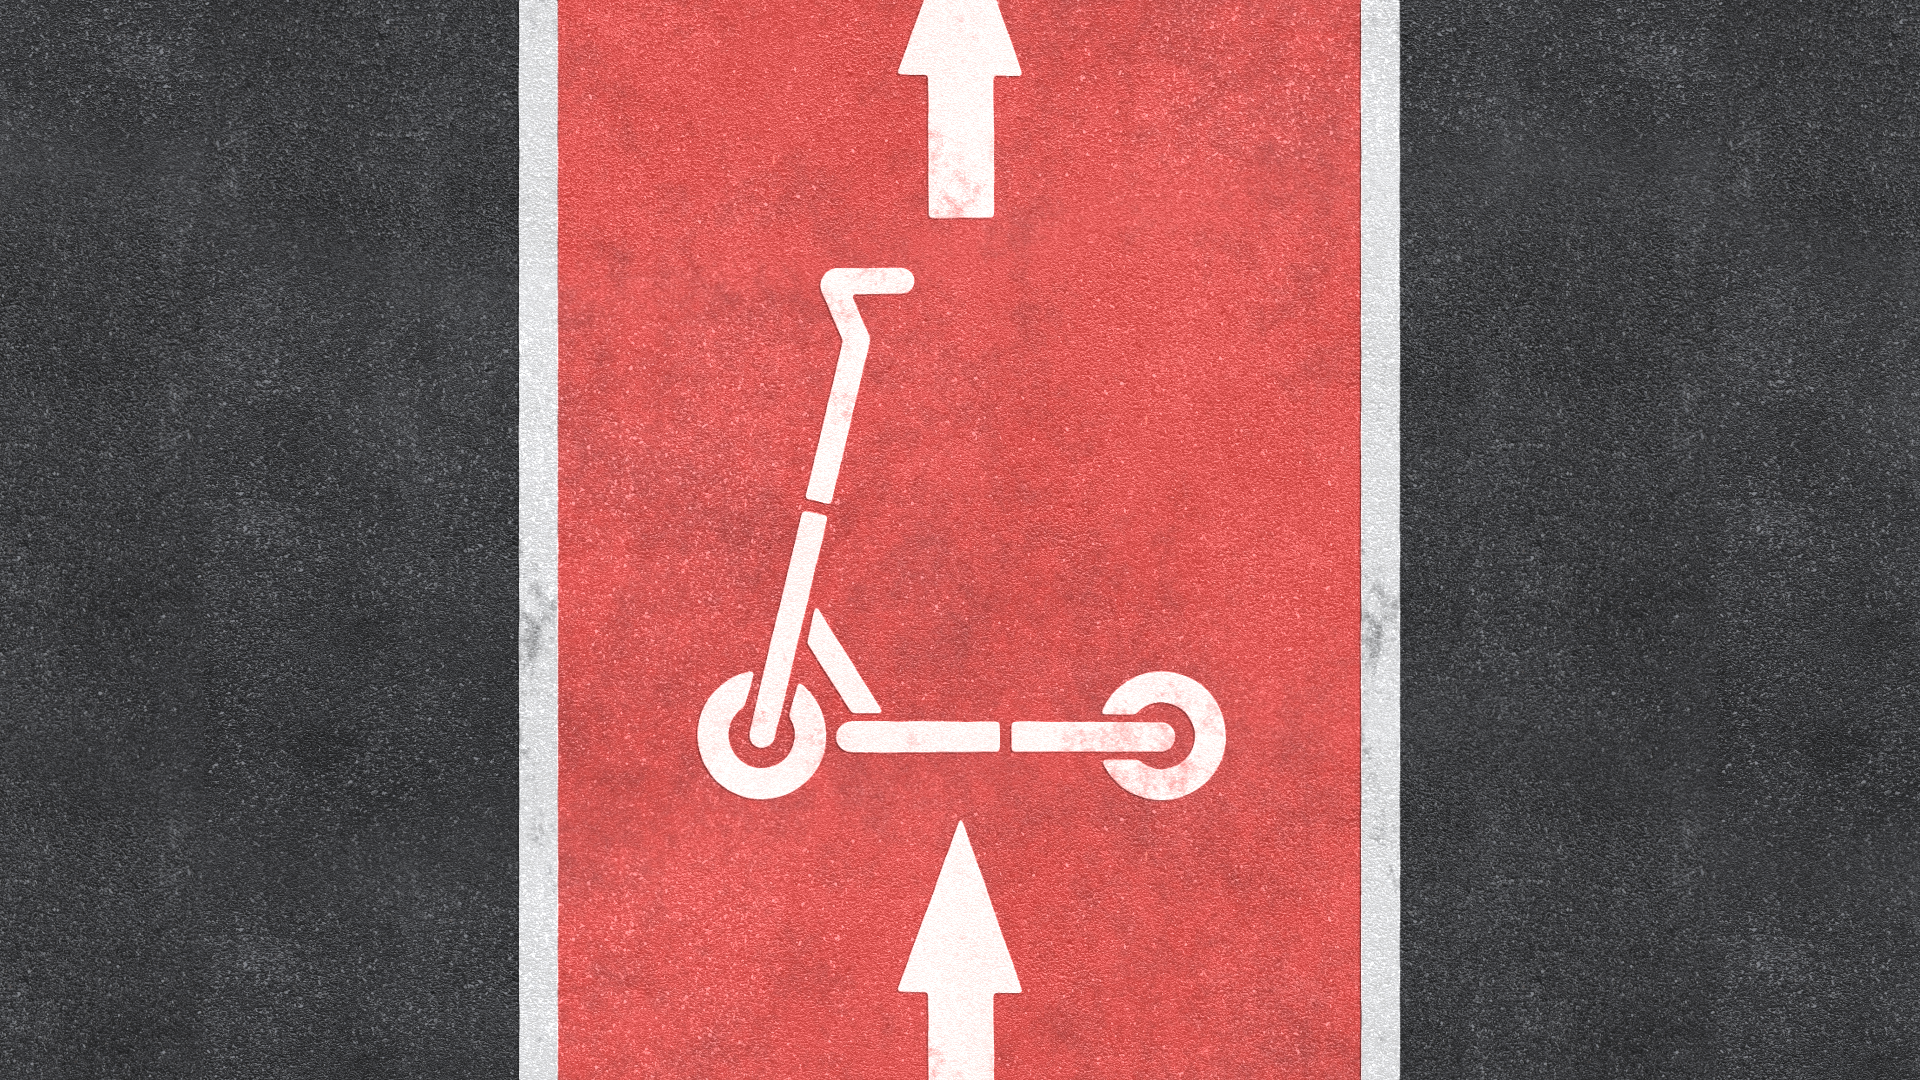 Illustration of a bike lane painted red with a scooter sign on it.